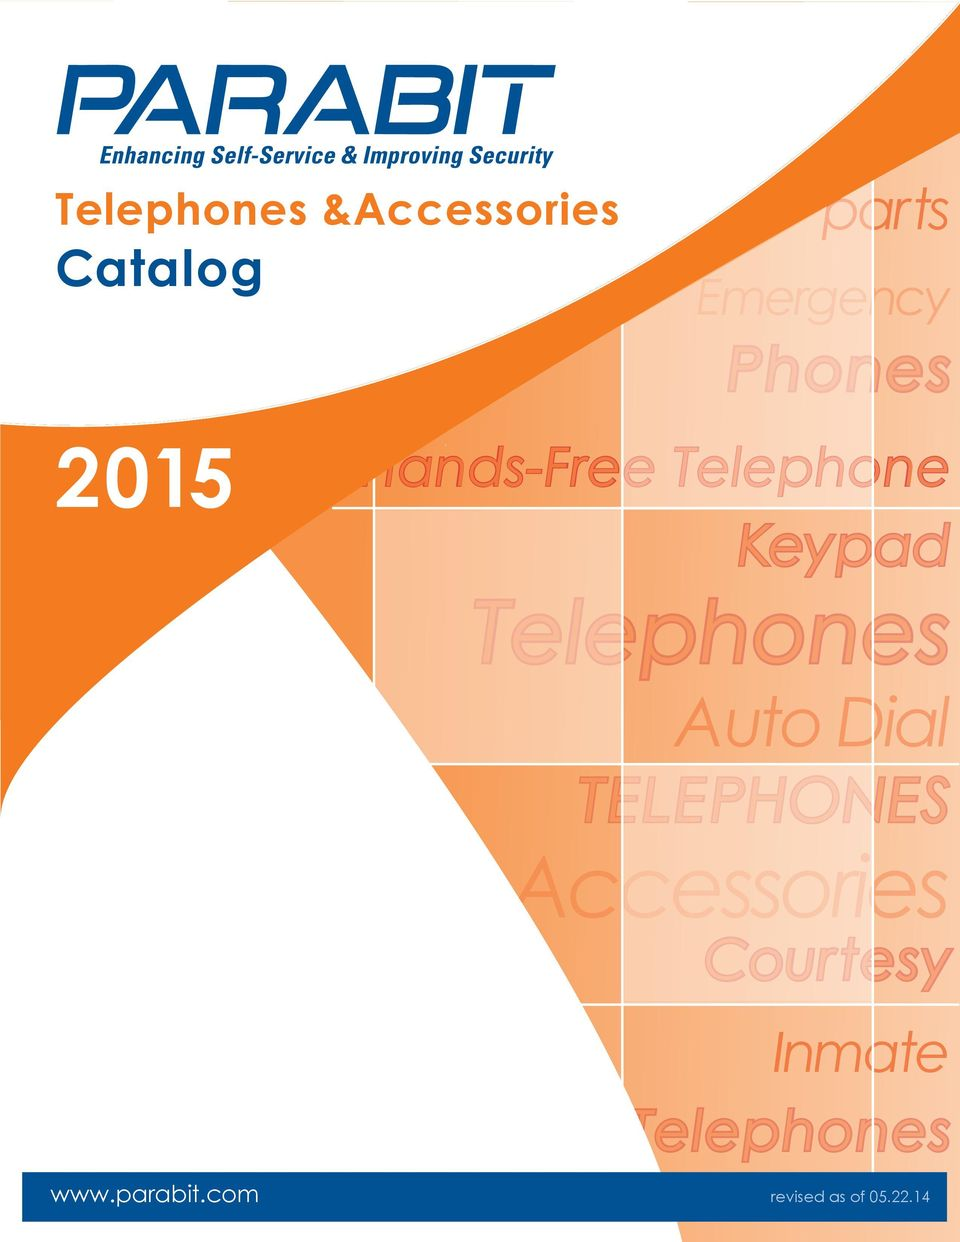 Telephones Auto Dial TELEPHONES Accessories